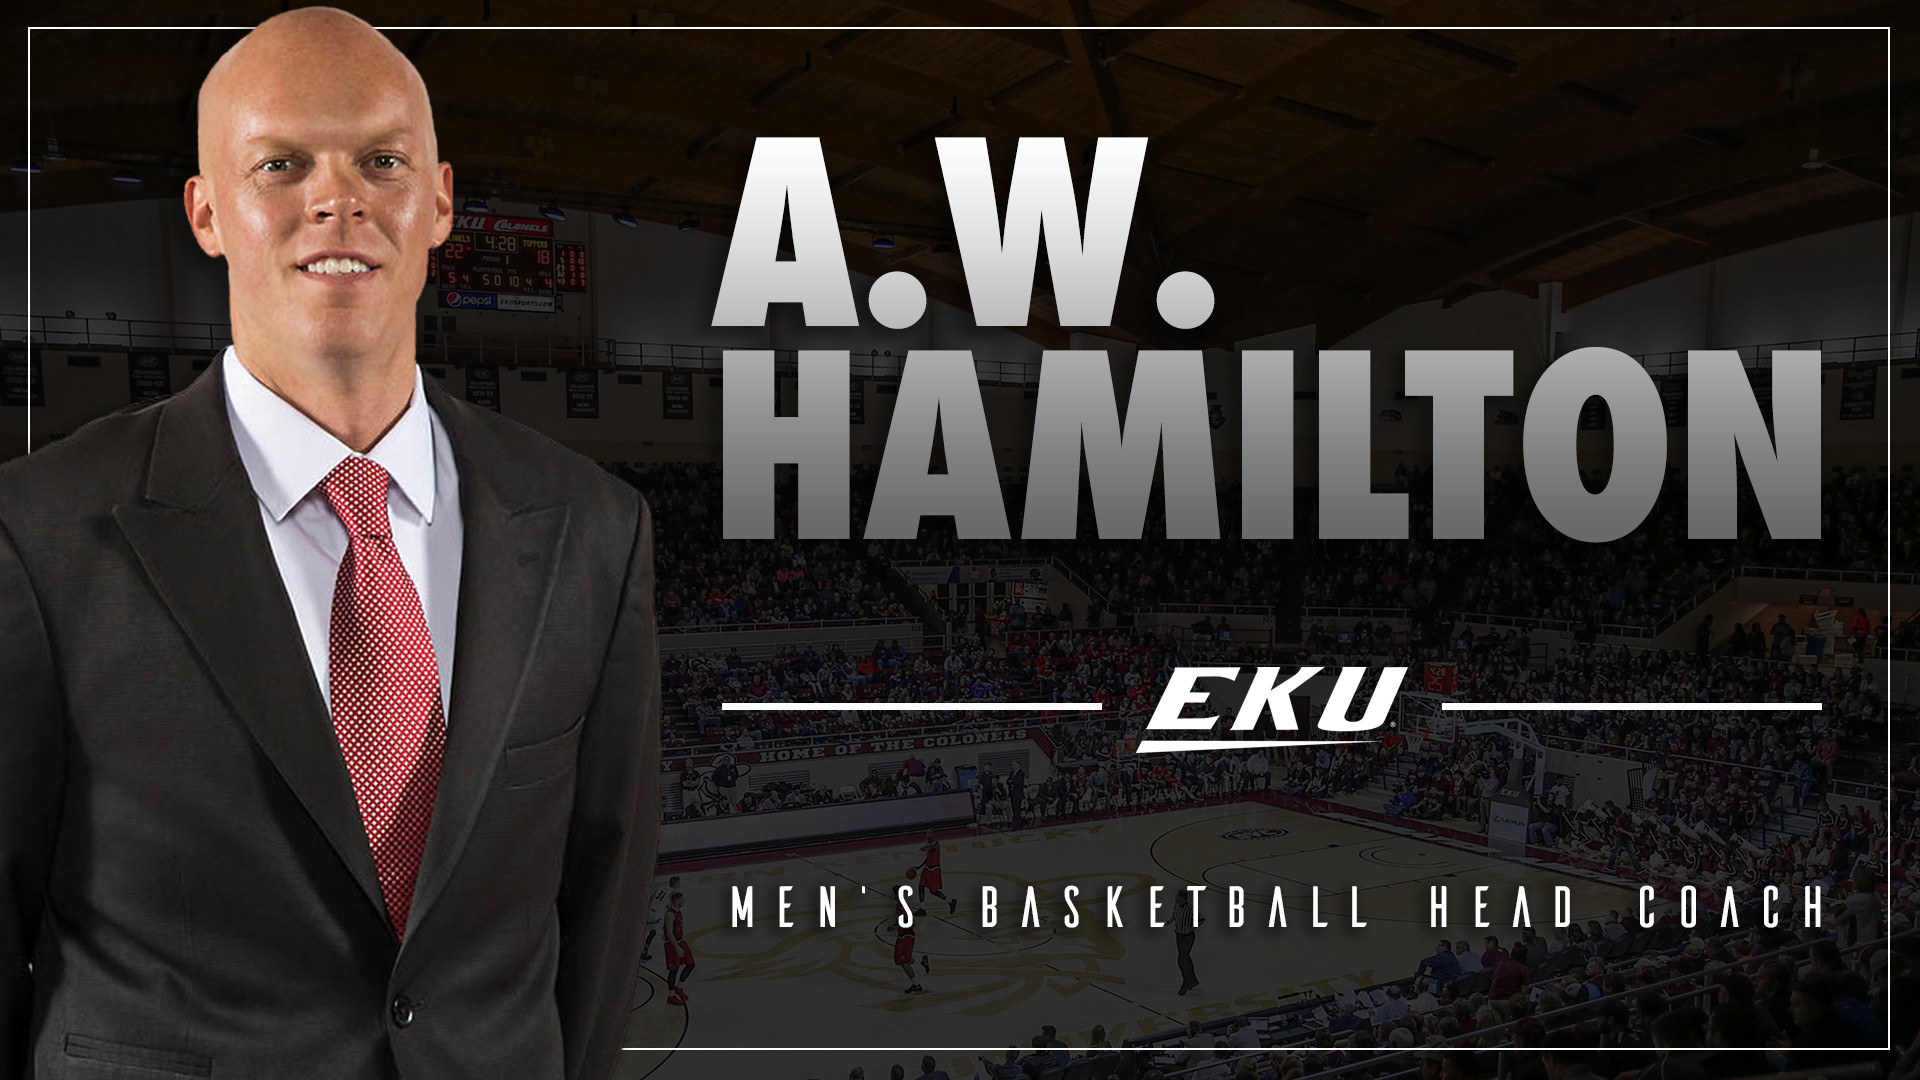 1920x1080 A.W. Hamilton Hired to Lead EKU Men's Basketball Program